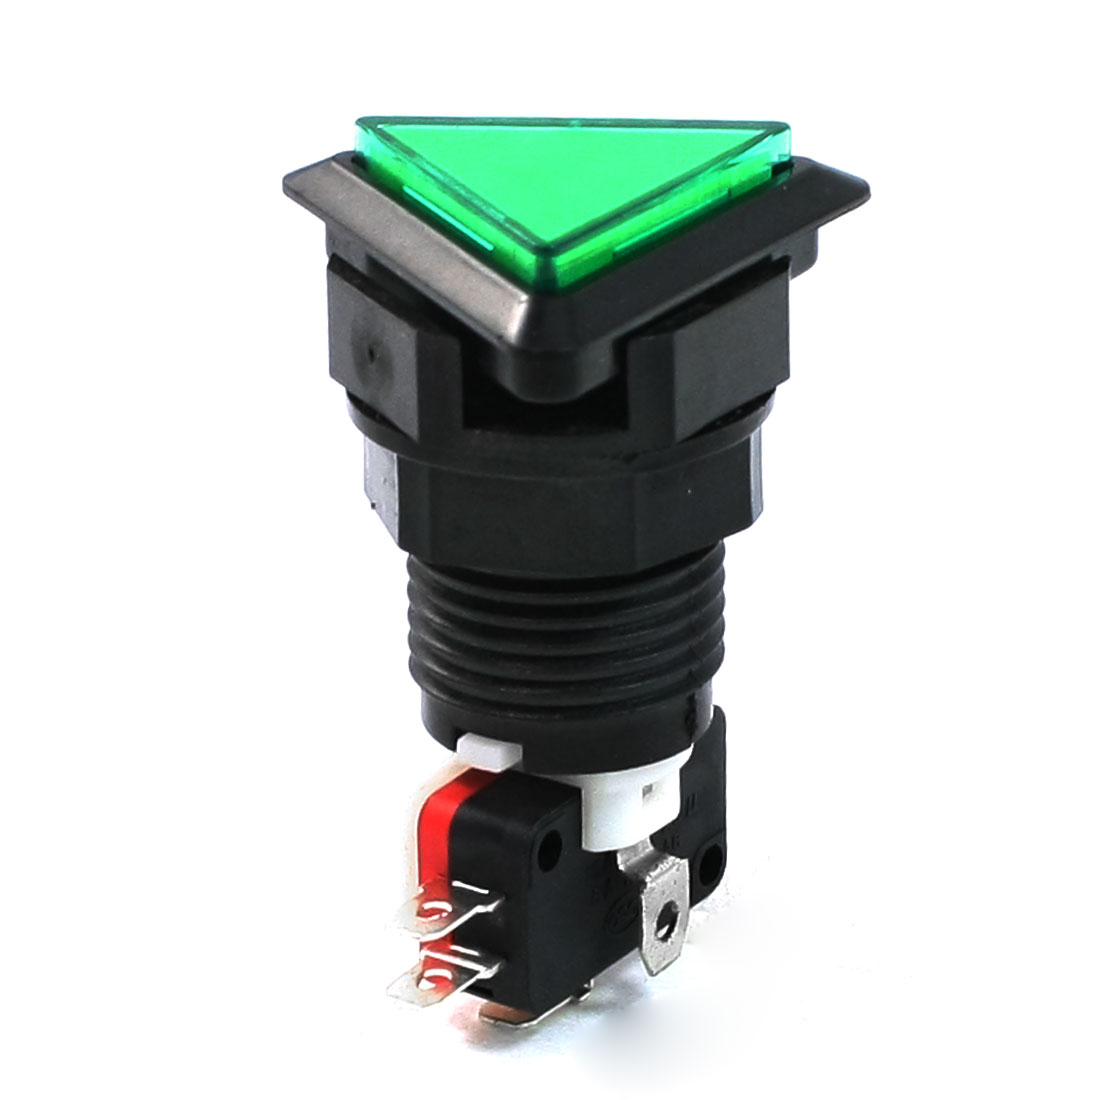 Green Triangle Cap NO NC Illuminated Push Button Switch AC 250V 15A